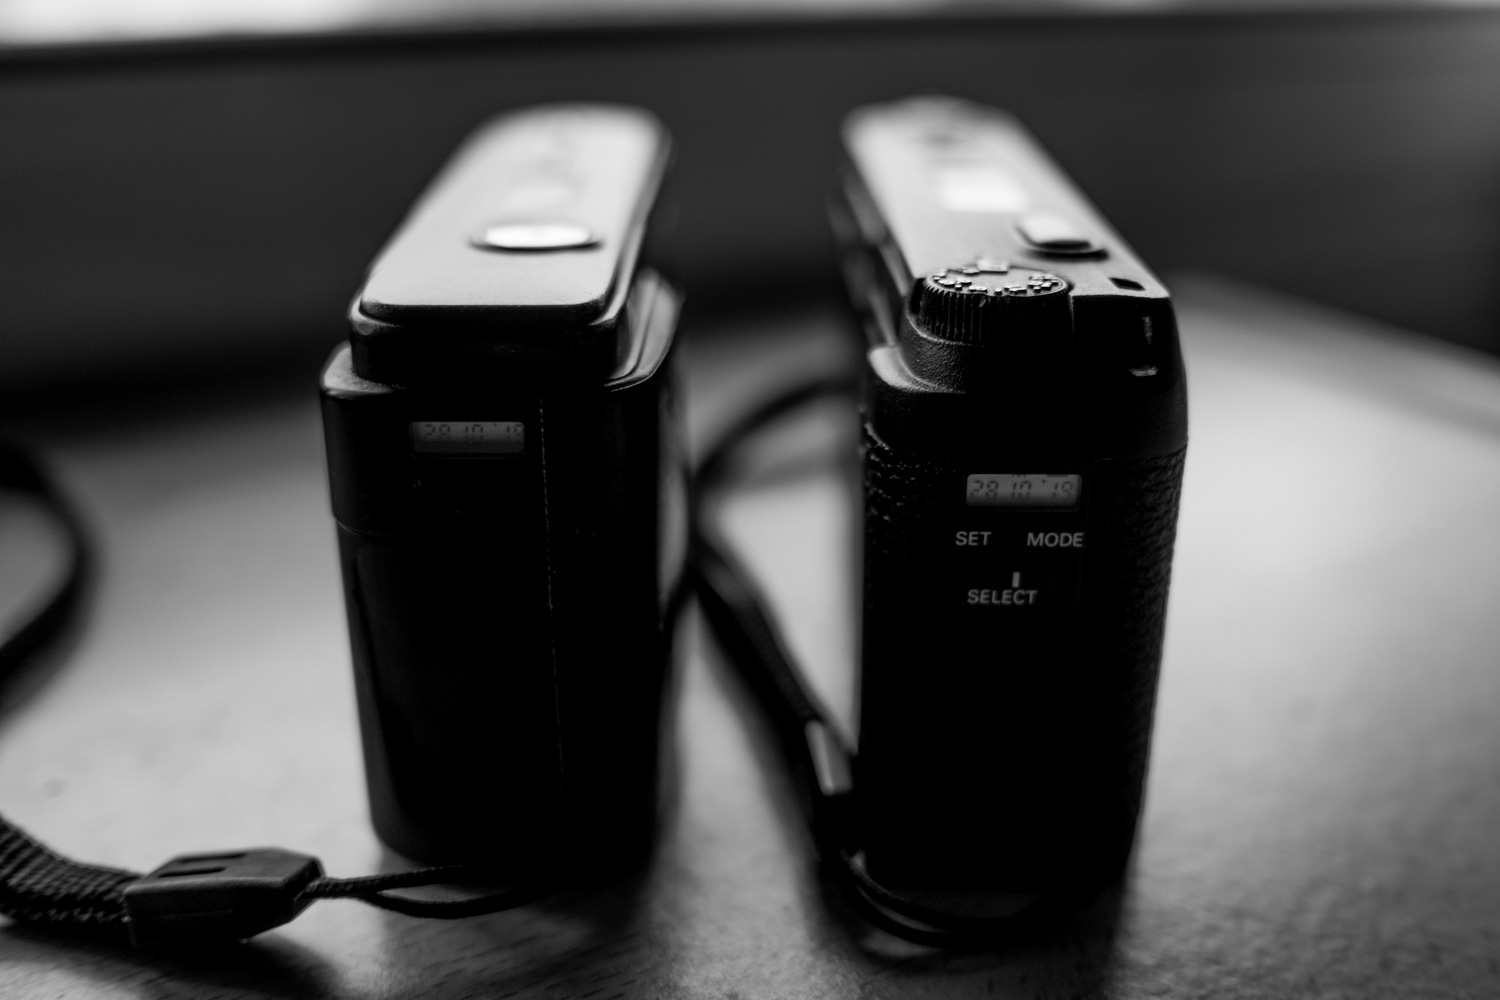 End-to-end - Ricoh GR10 (left), Ricoh GR1s (right)